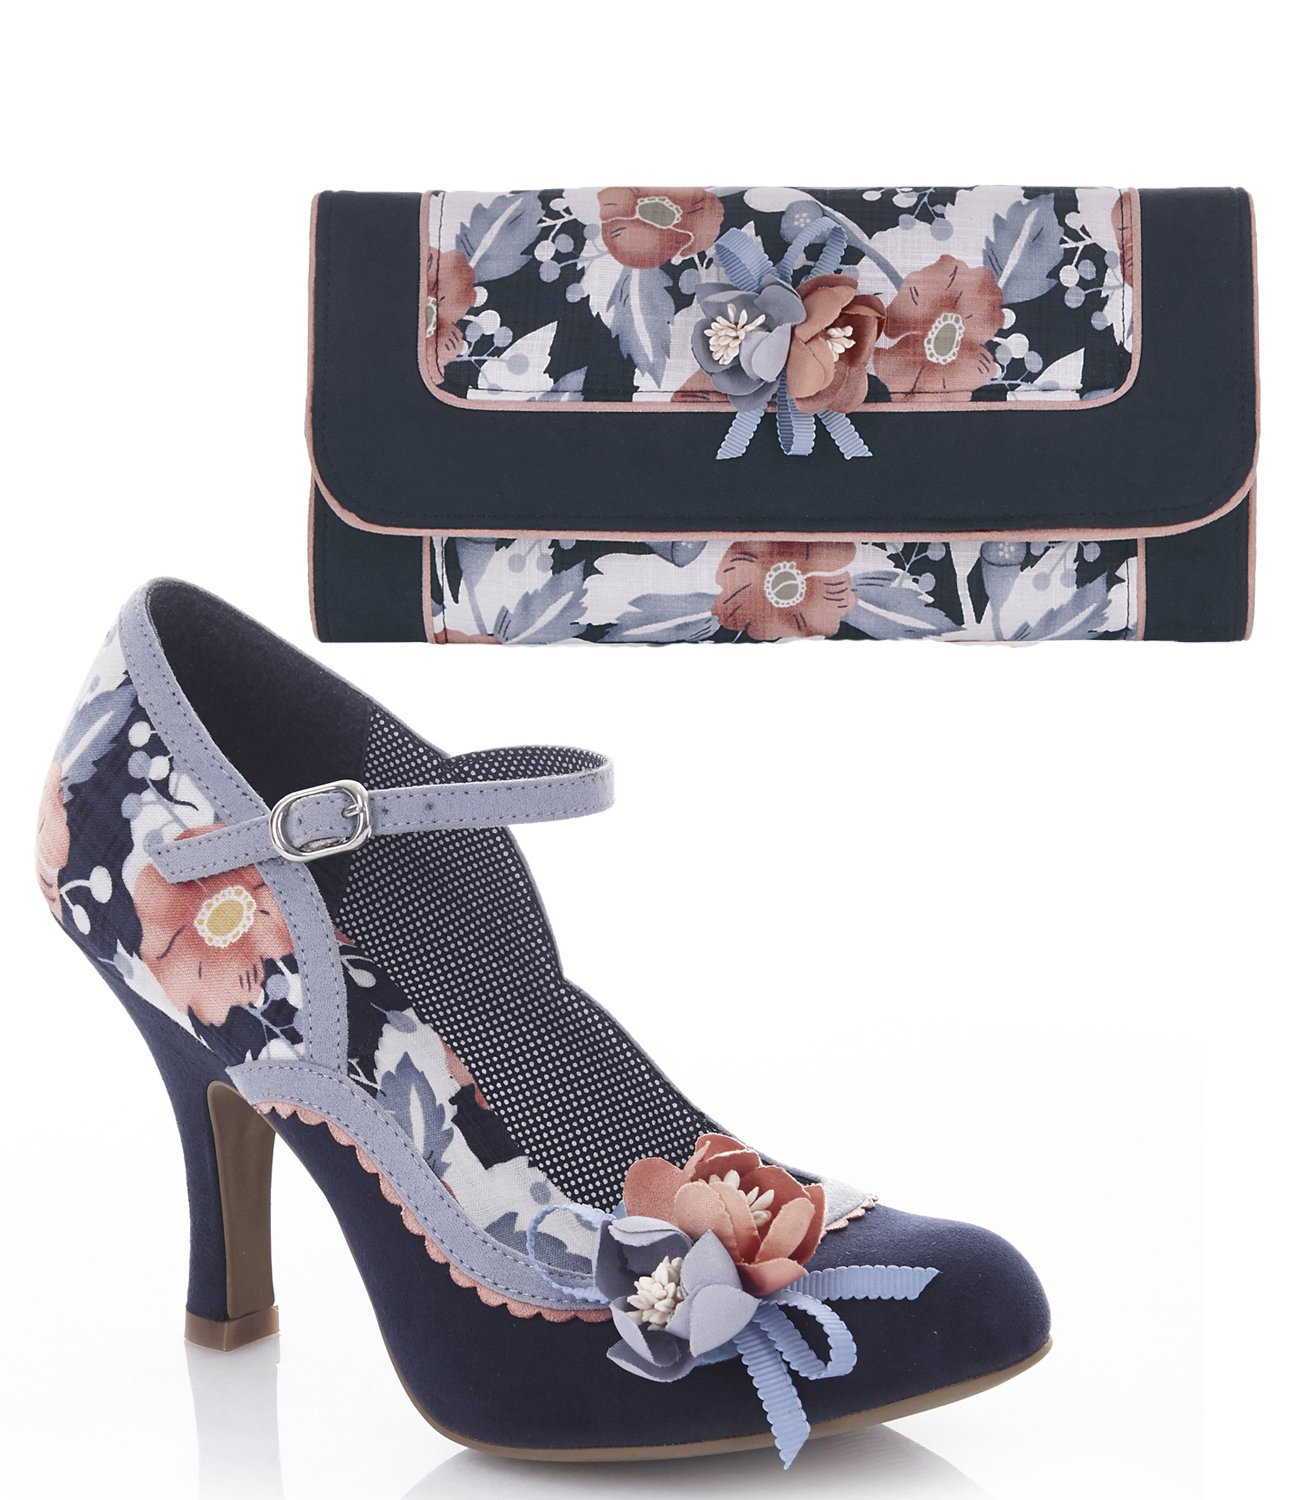 Ruby Shoo Women's Navy Floral Silvia Mary Jane Pumps & Matching Genoa Bag UK 7 EU 40